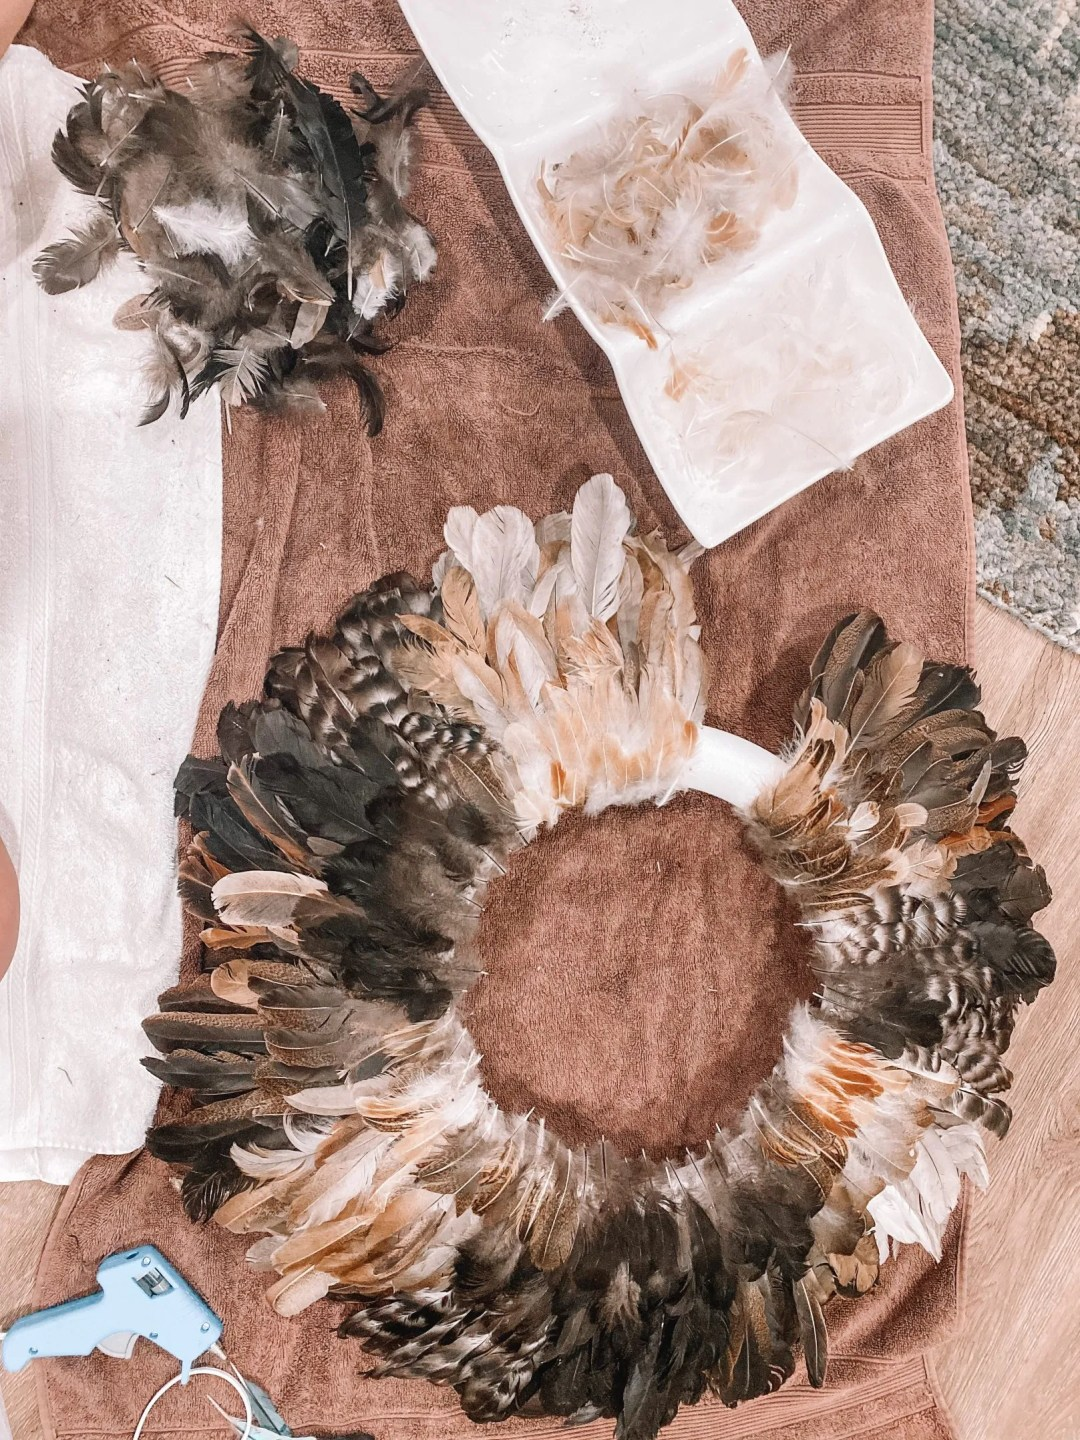 What to do with Chicken Feathers